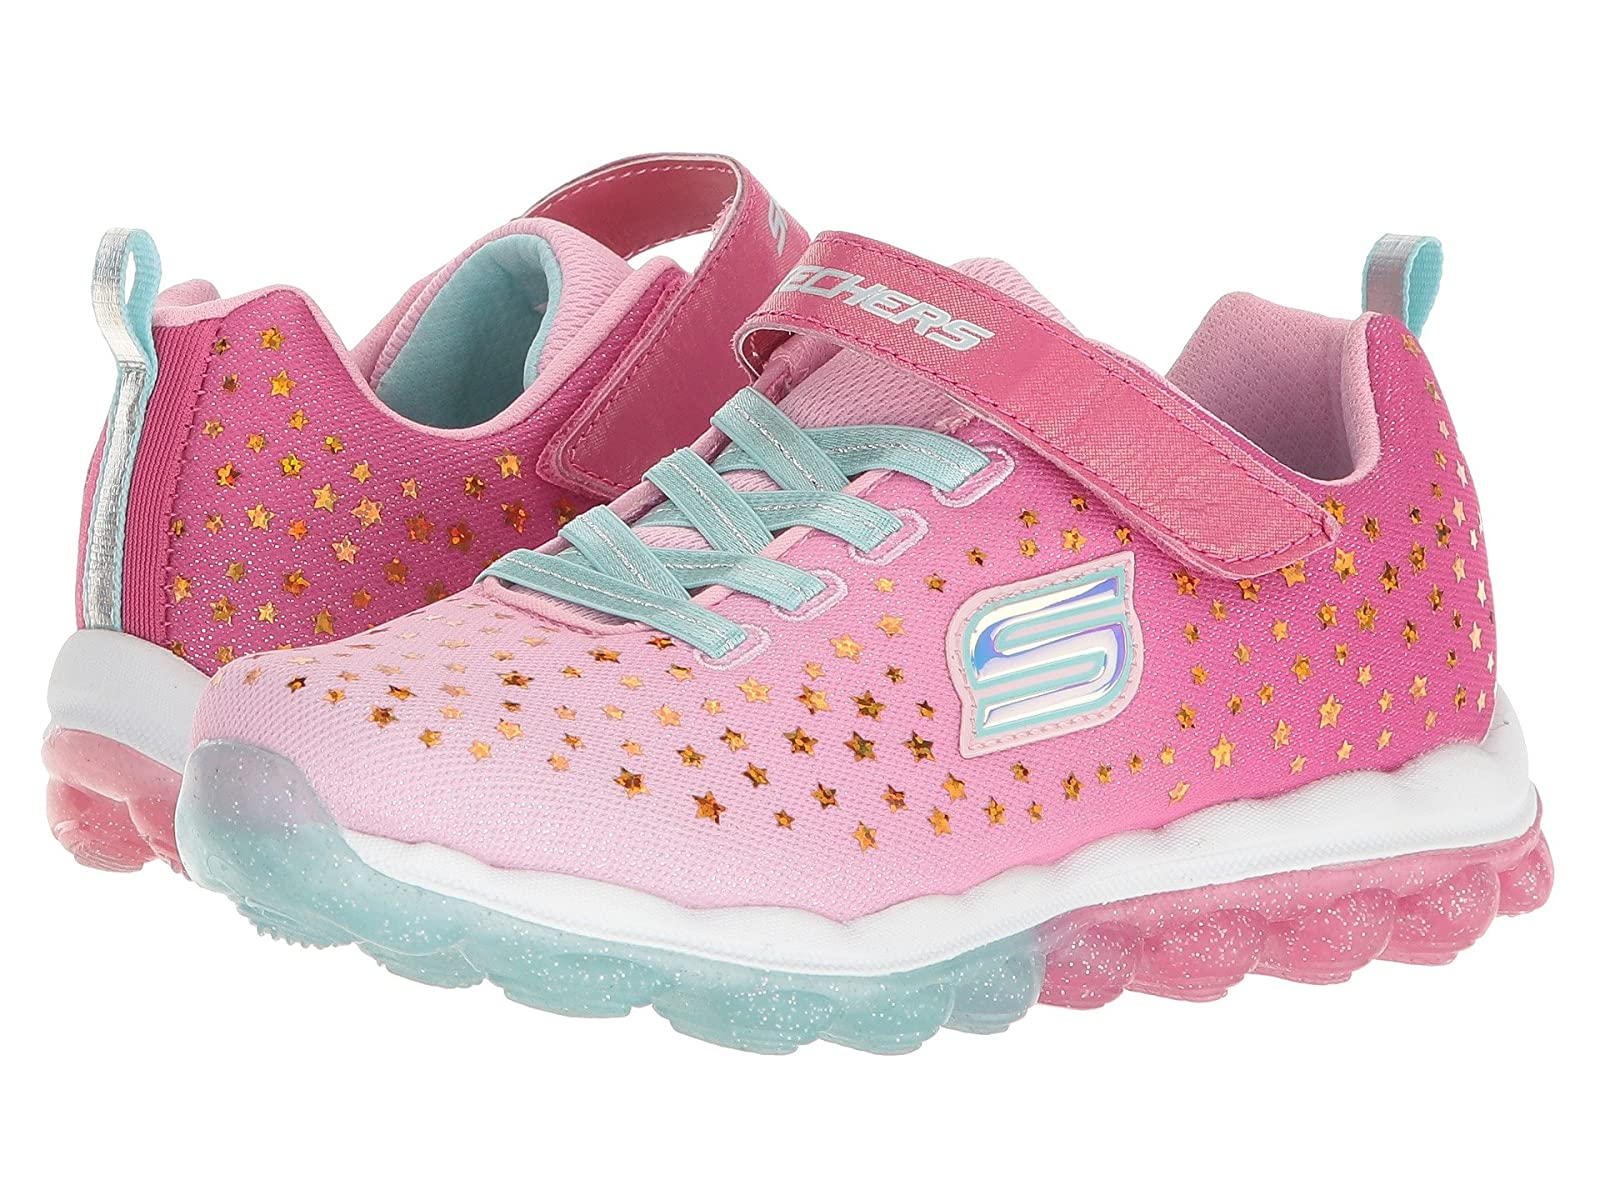 SKECHERS KIDS Skech-Air Jump Star 80144L (Little Kid/Big Kid)Cheap and distinctive eye-catching shoes